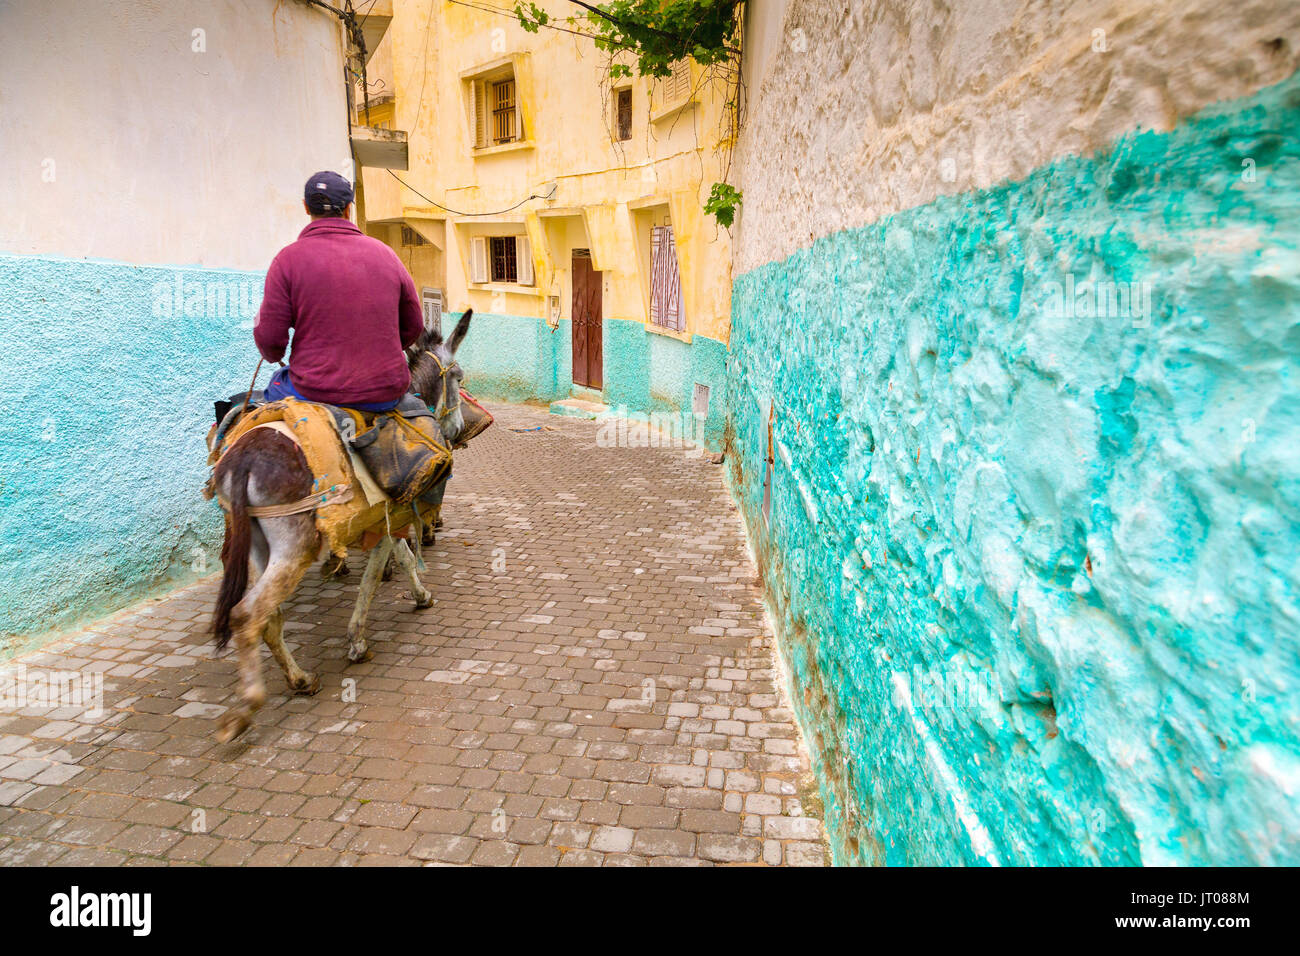 Man riding a donkey, Street life scene, Moulay Idriss. Morocco, Maghreb North Africa - Stock Image